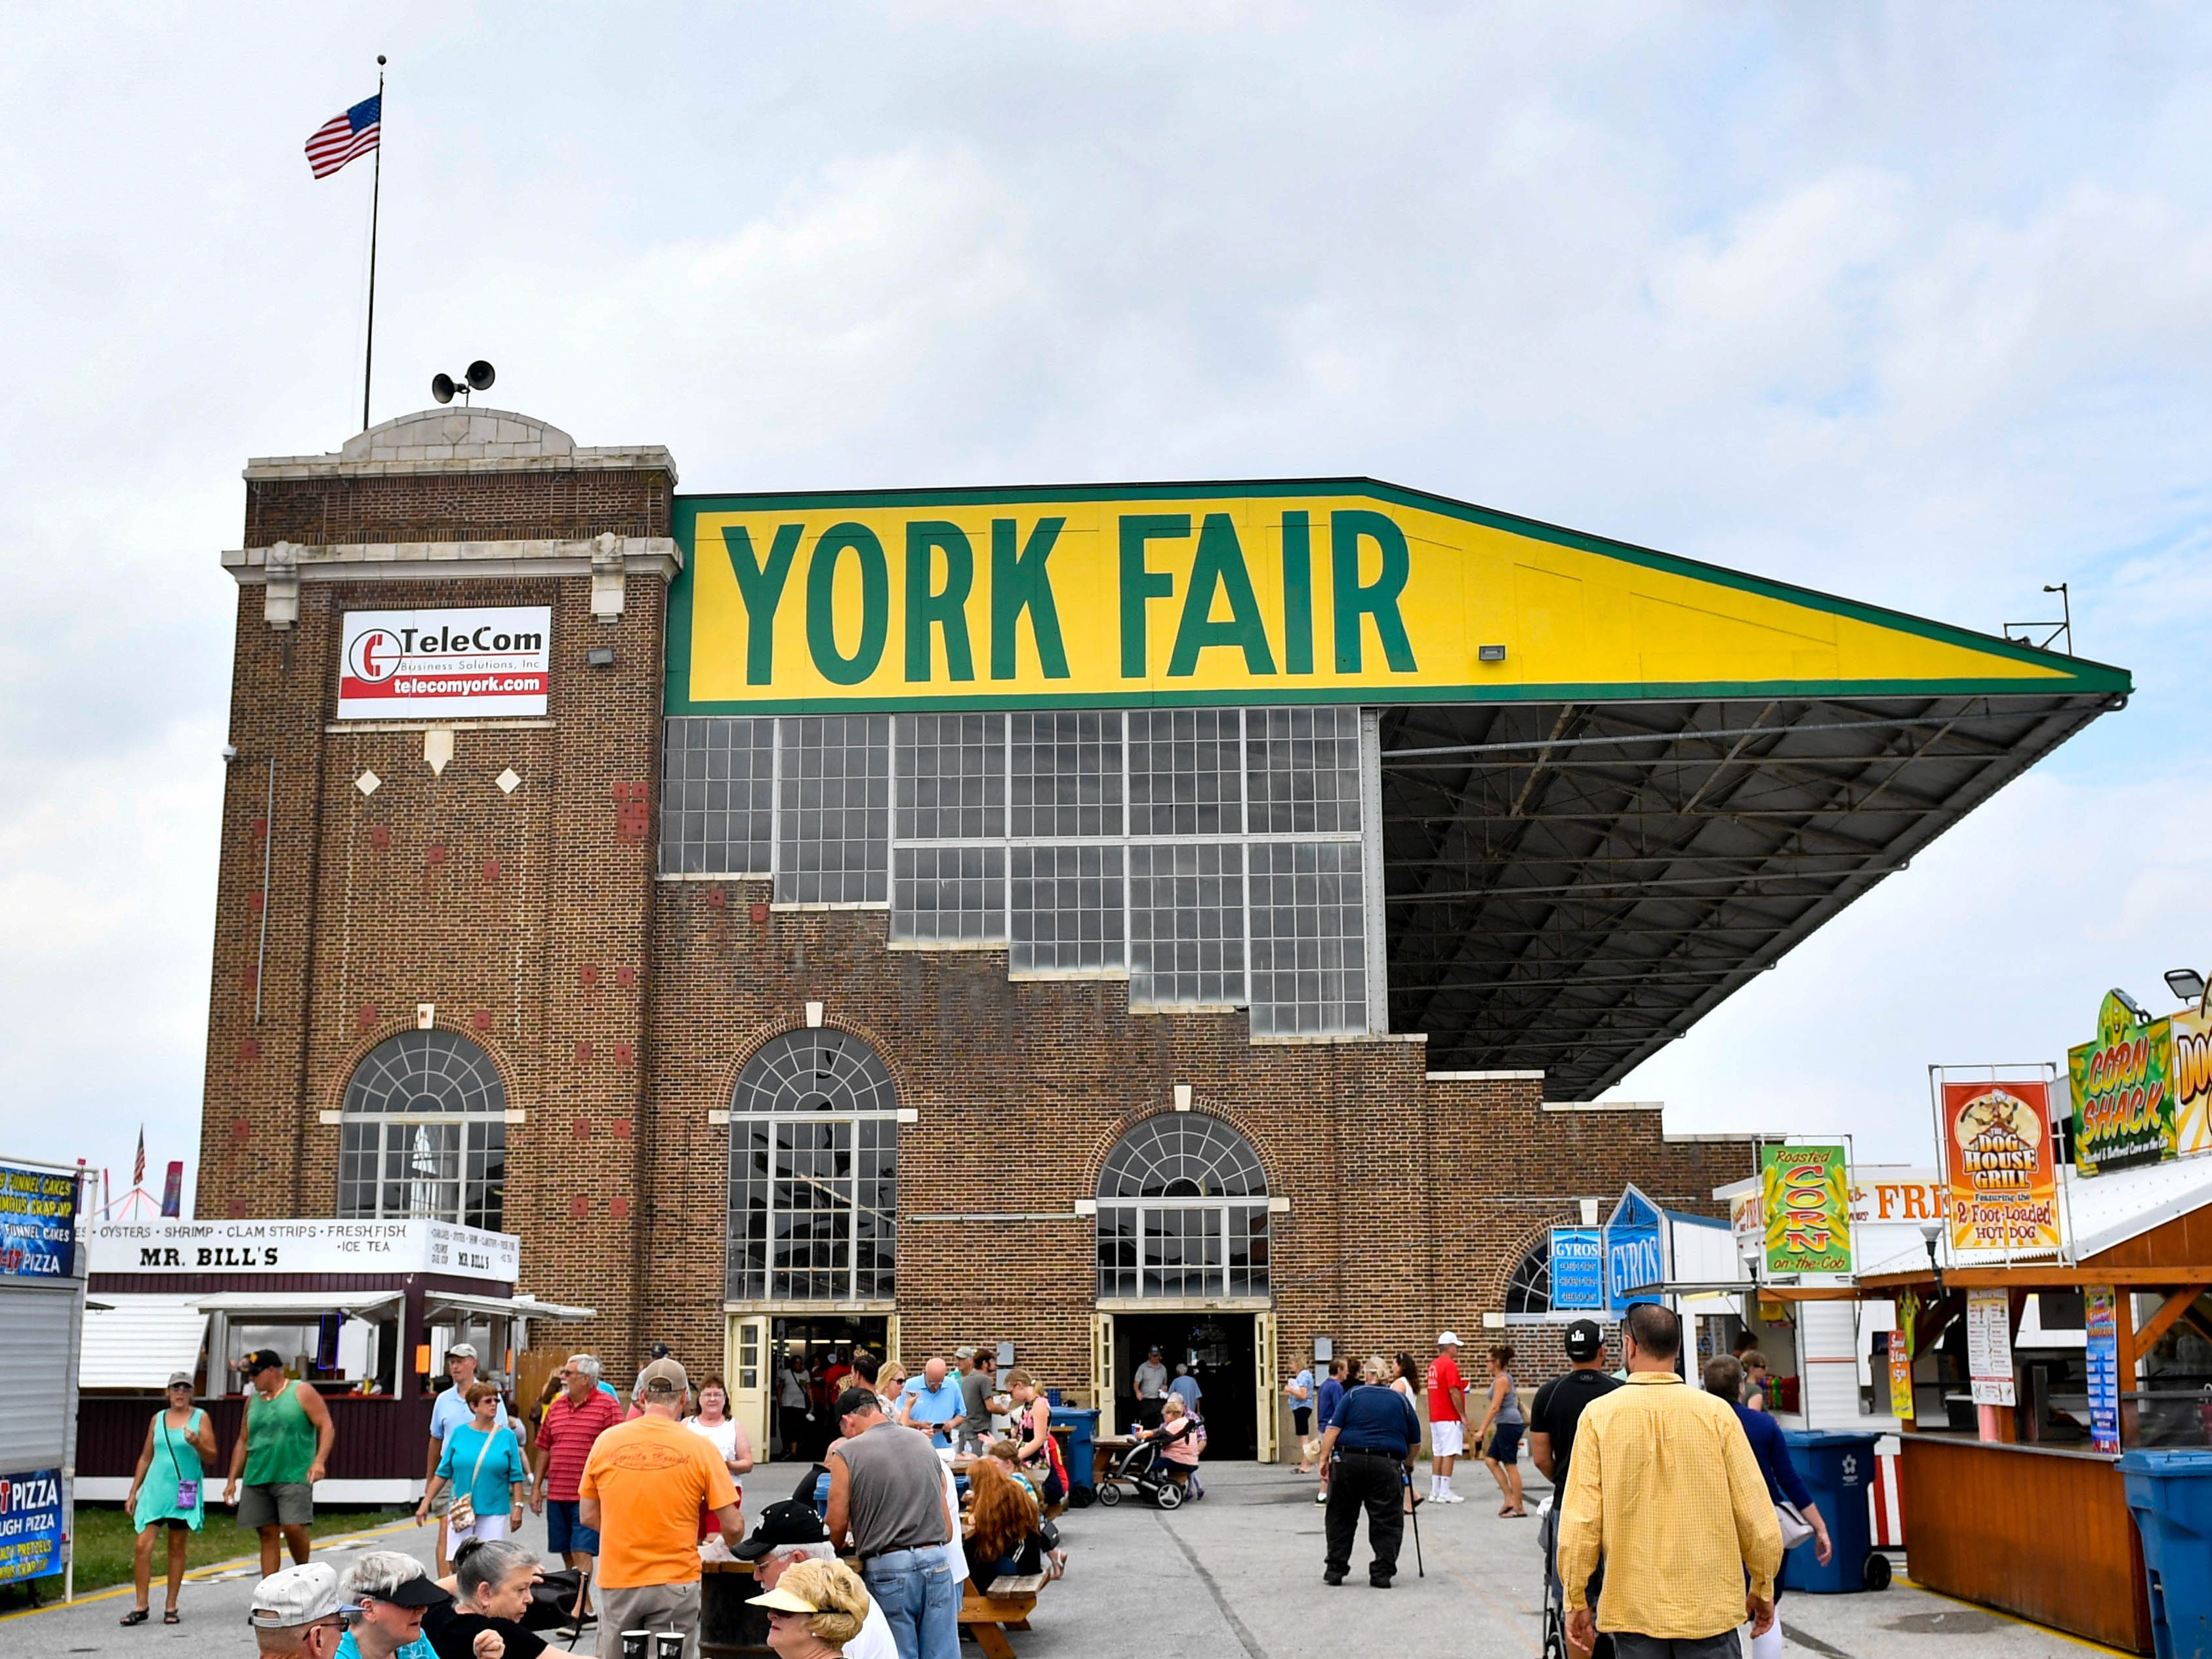 Every inch of the York Fair has food, games, rides or other experiences for all to enjoy.